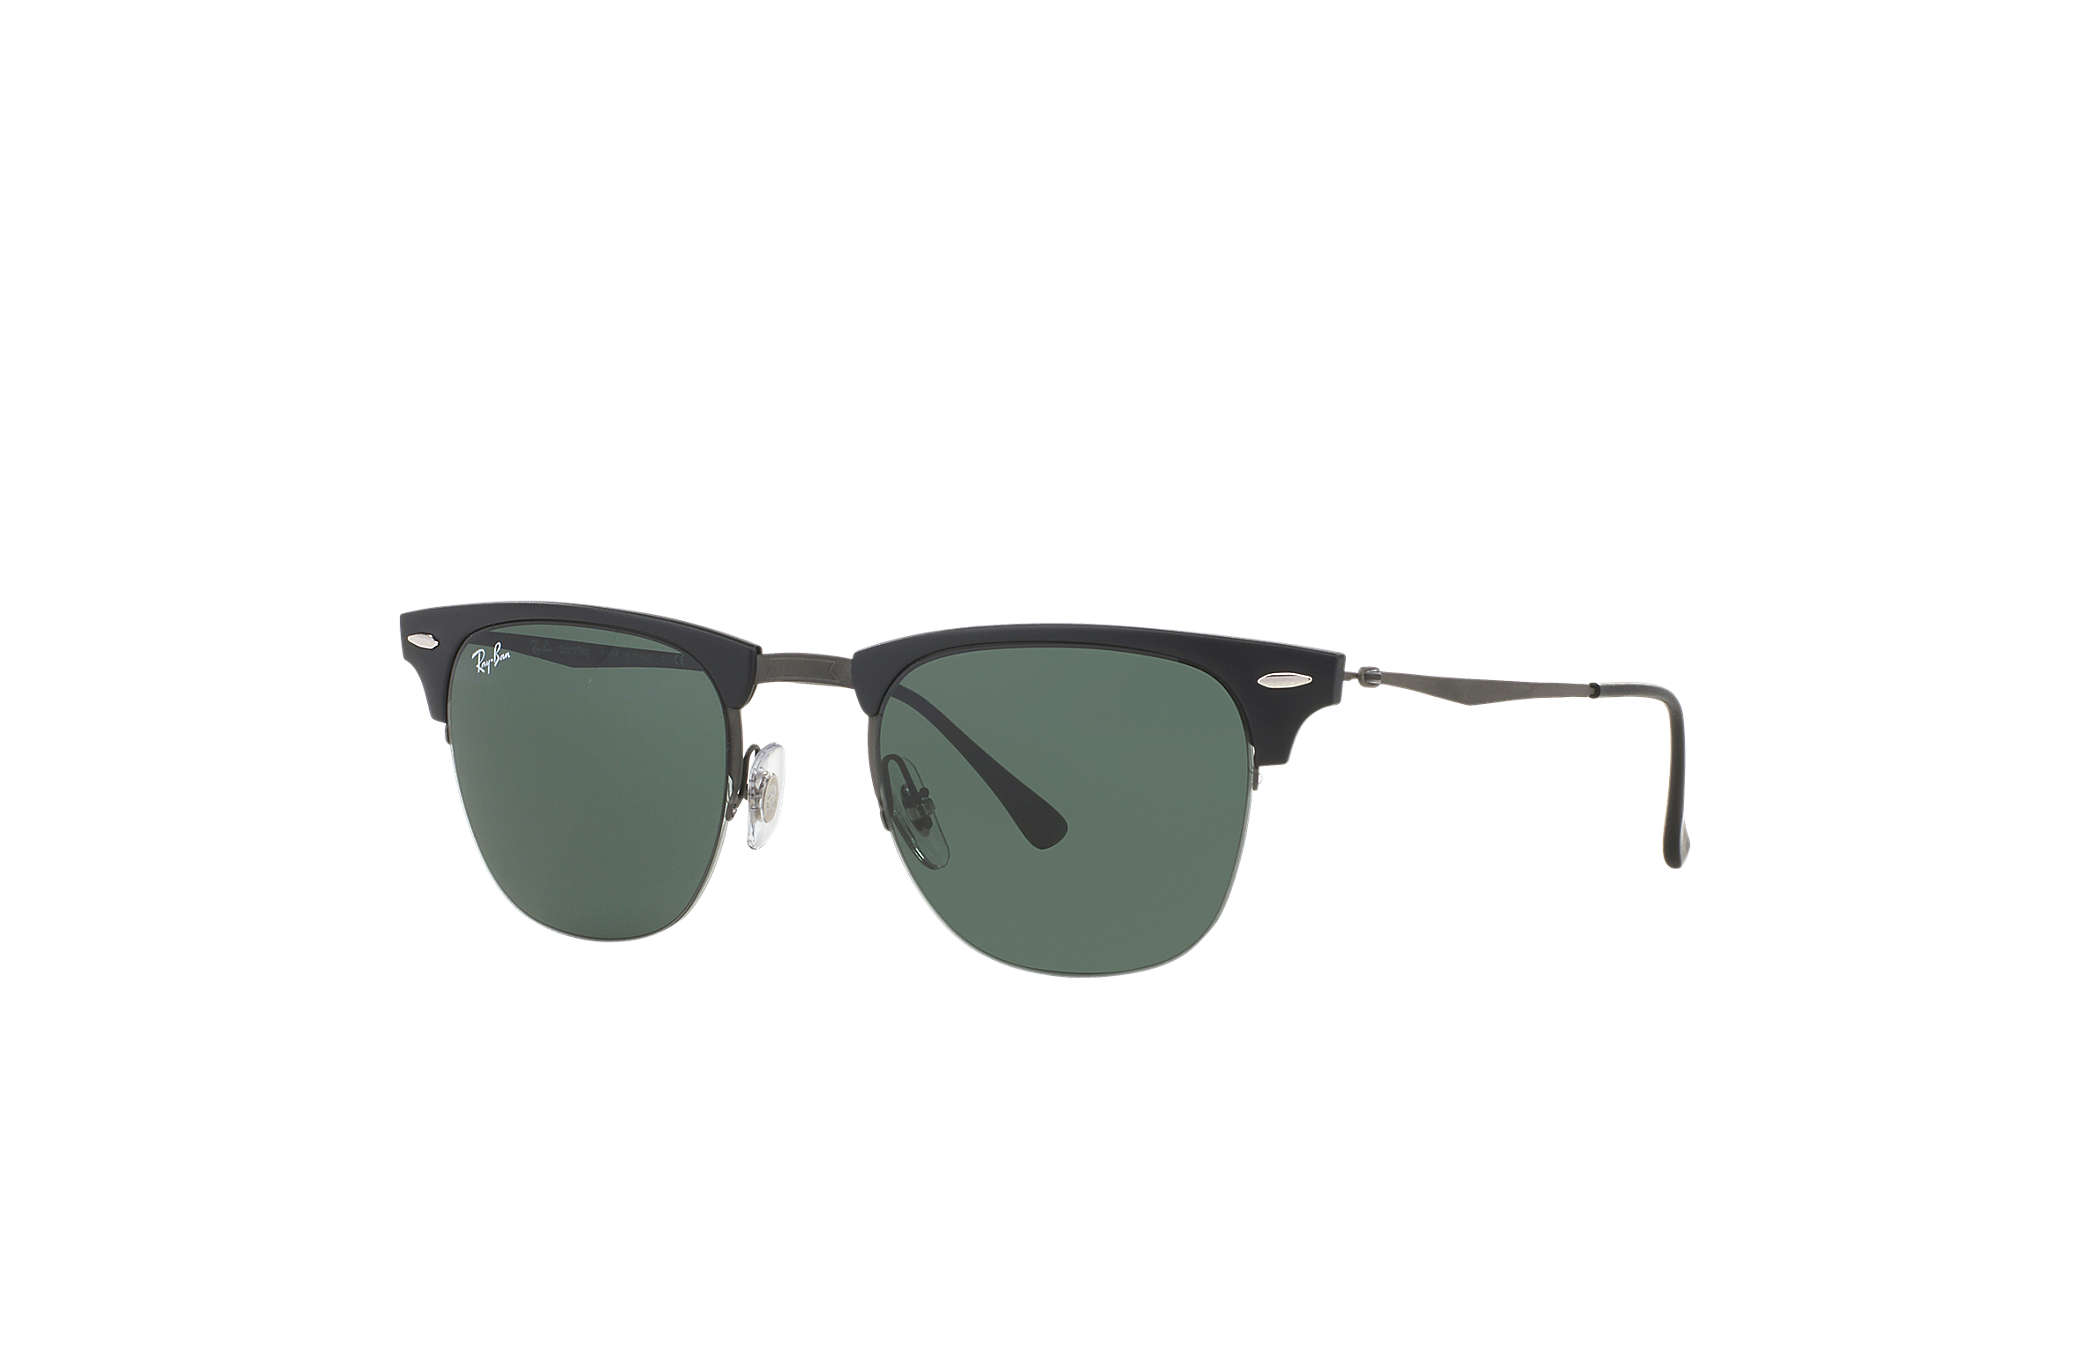 ad185317f4 Ray-Ban Clubmaster Light Ray RB8056 Negro - Lightray Titanio ...